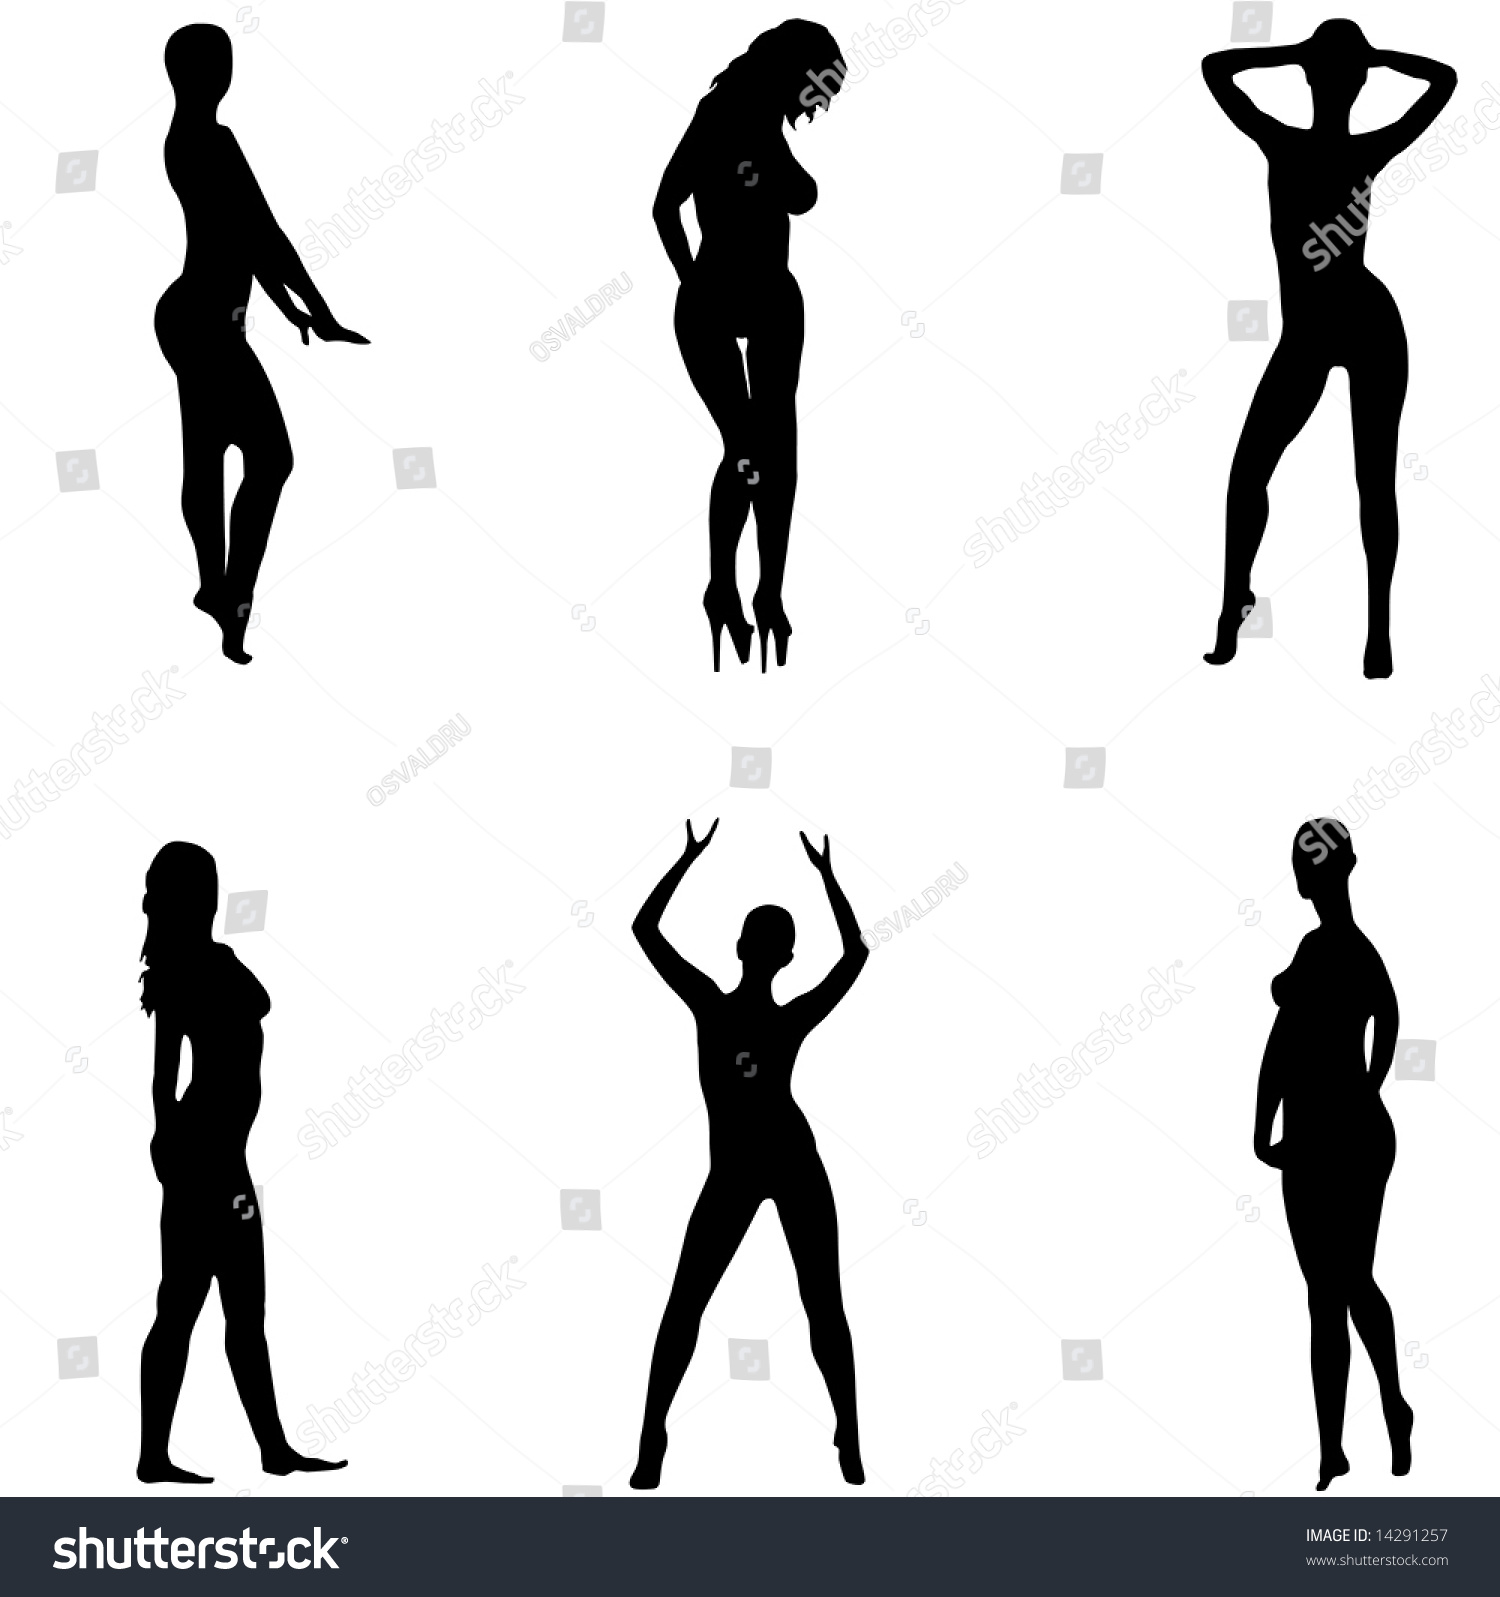 Silhouettes Girls Sexual Poses Without Clothes Stock Vector 14291257 - Shutterstock-9469